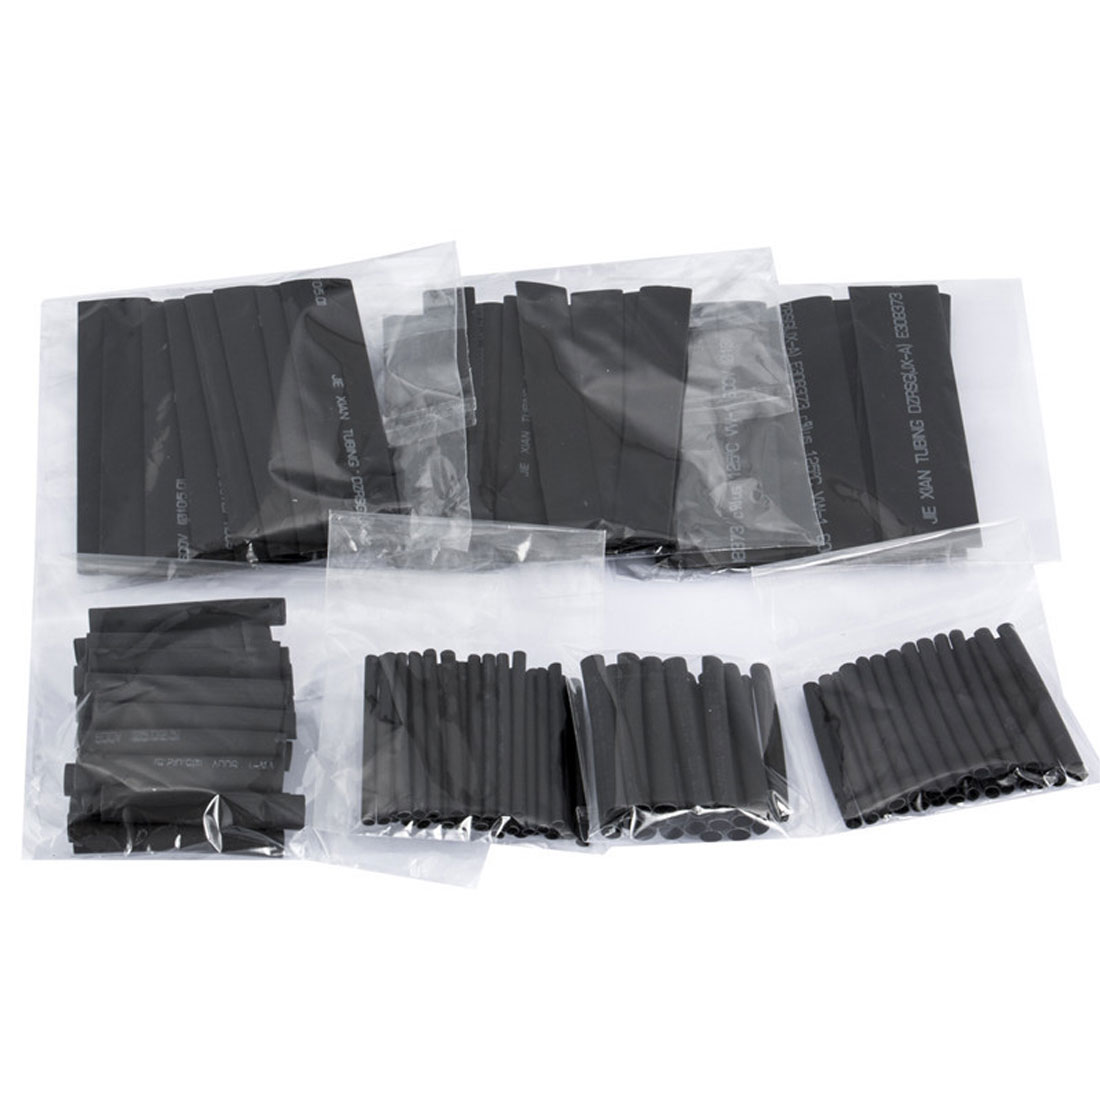 New 127pcs 2:1 7 Sizes Assortment Polyolefin Halogen-Free Heat Shrink Tubing Tube Sleeving Wire Cable Kit антивозрастная сыворотка с чагой the saem chaga anti wrinkle serum